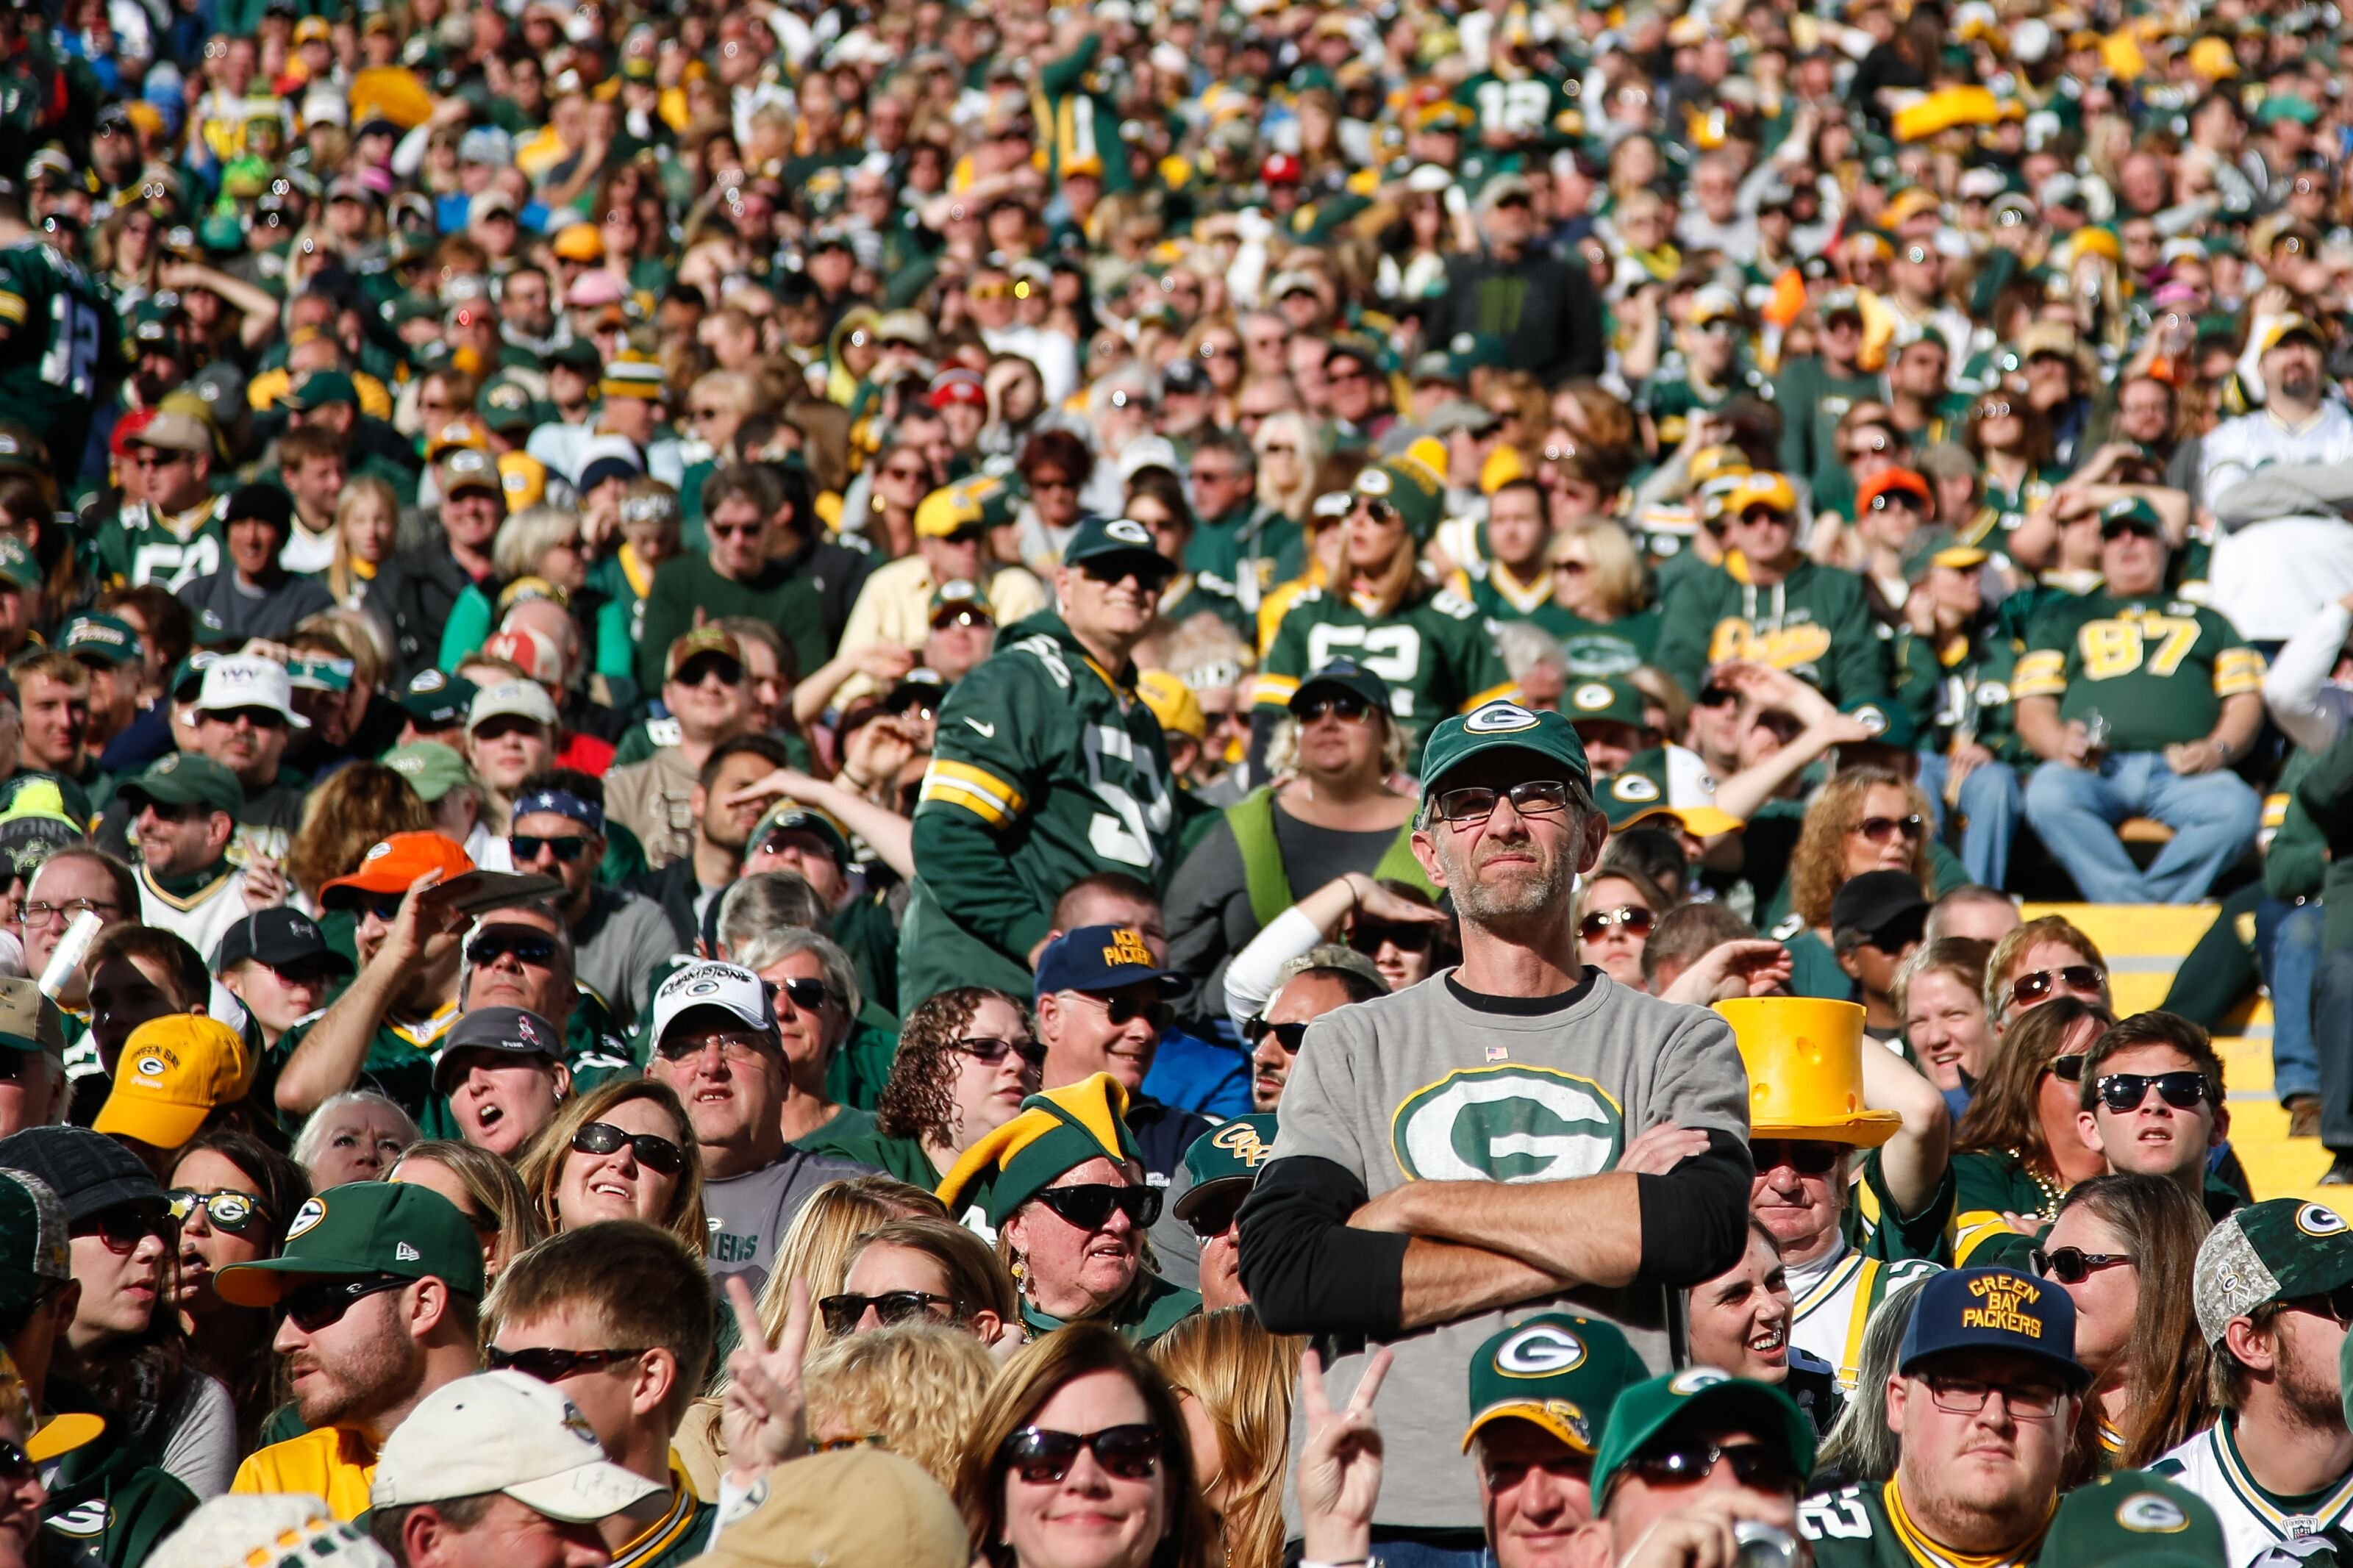 Packers roundup: How did you become a fan of the team?